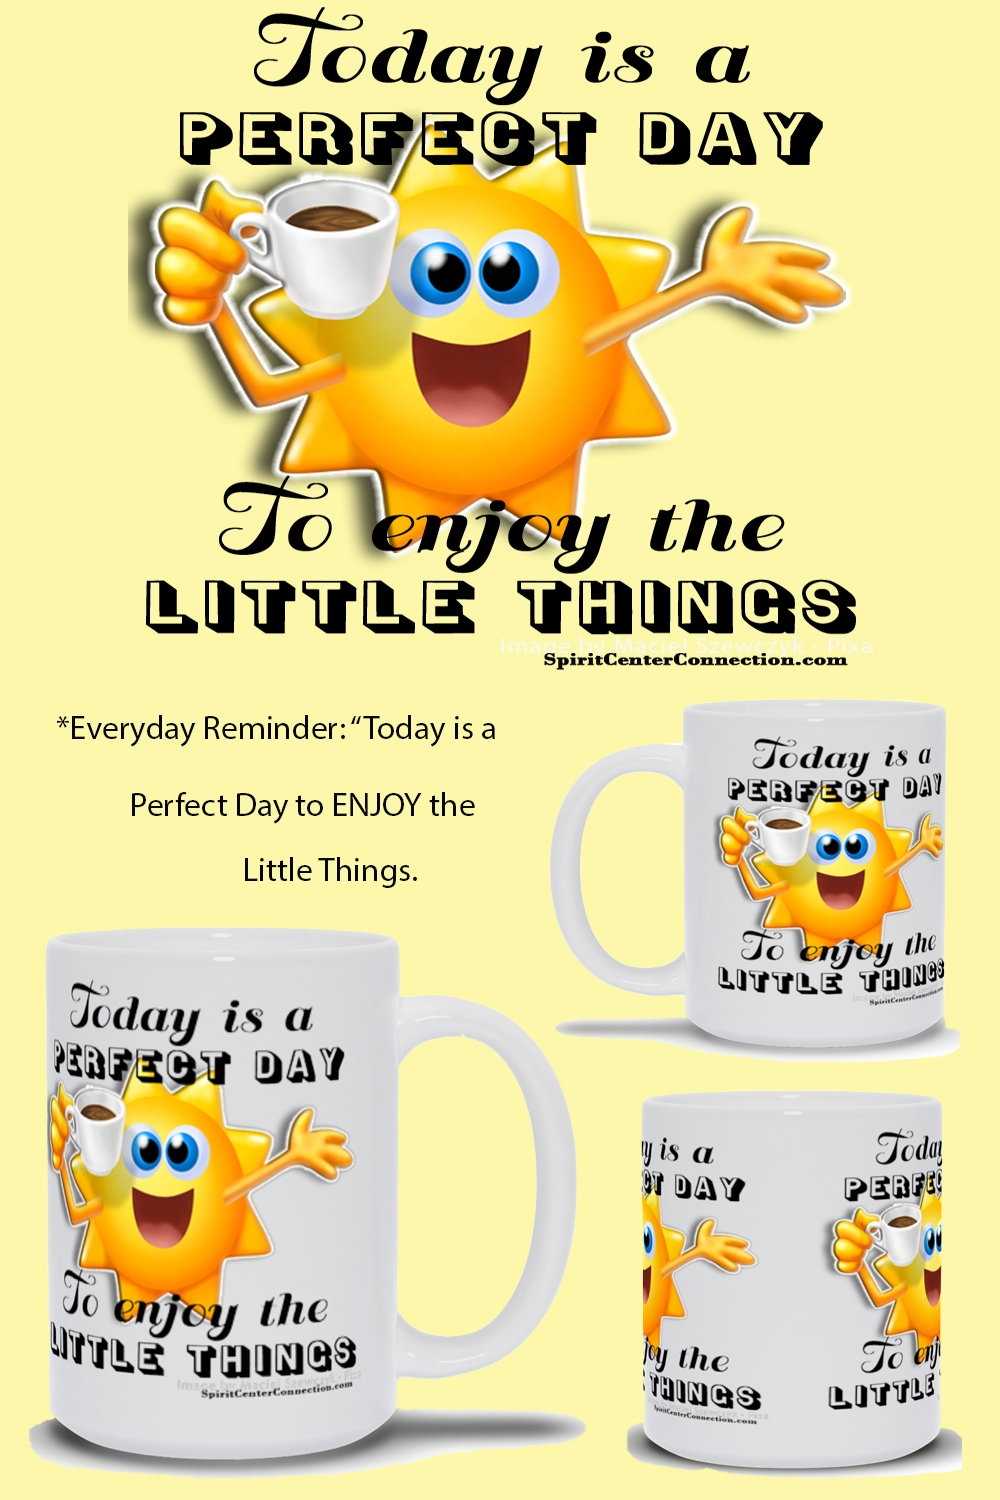 Today is a Perfect Day to Enjoy the Little Things